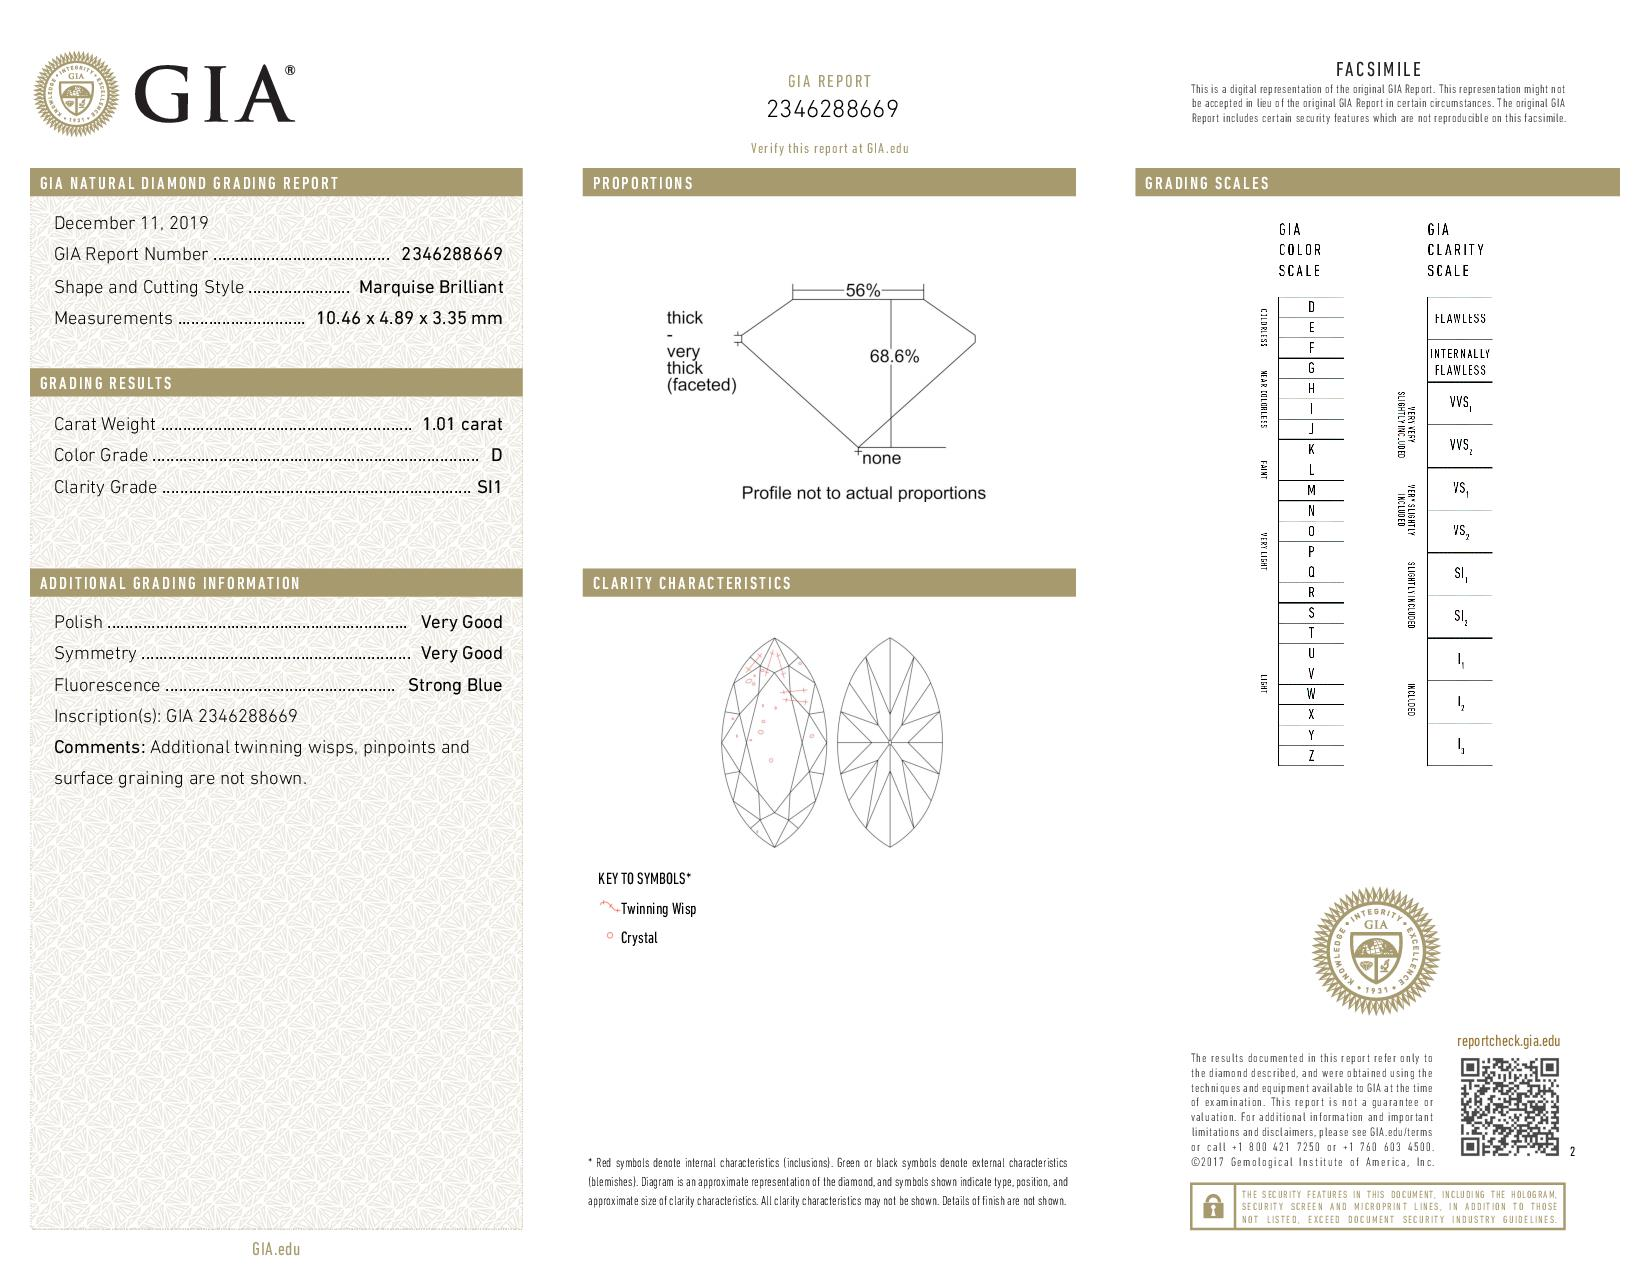 This is a 1.01 carat marquise shape, D color, SI1 clarity natural diamond accompanied by a GIA grading report.